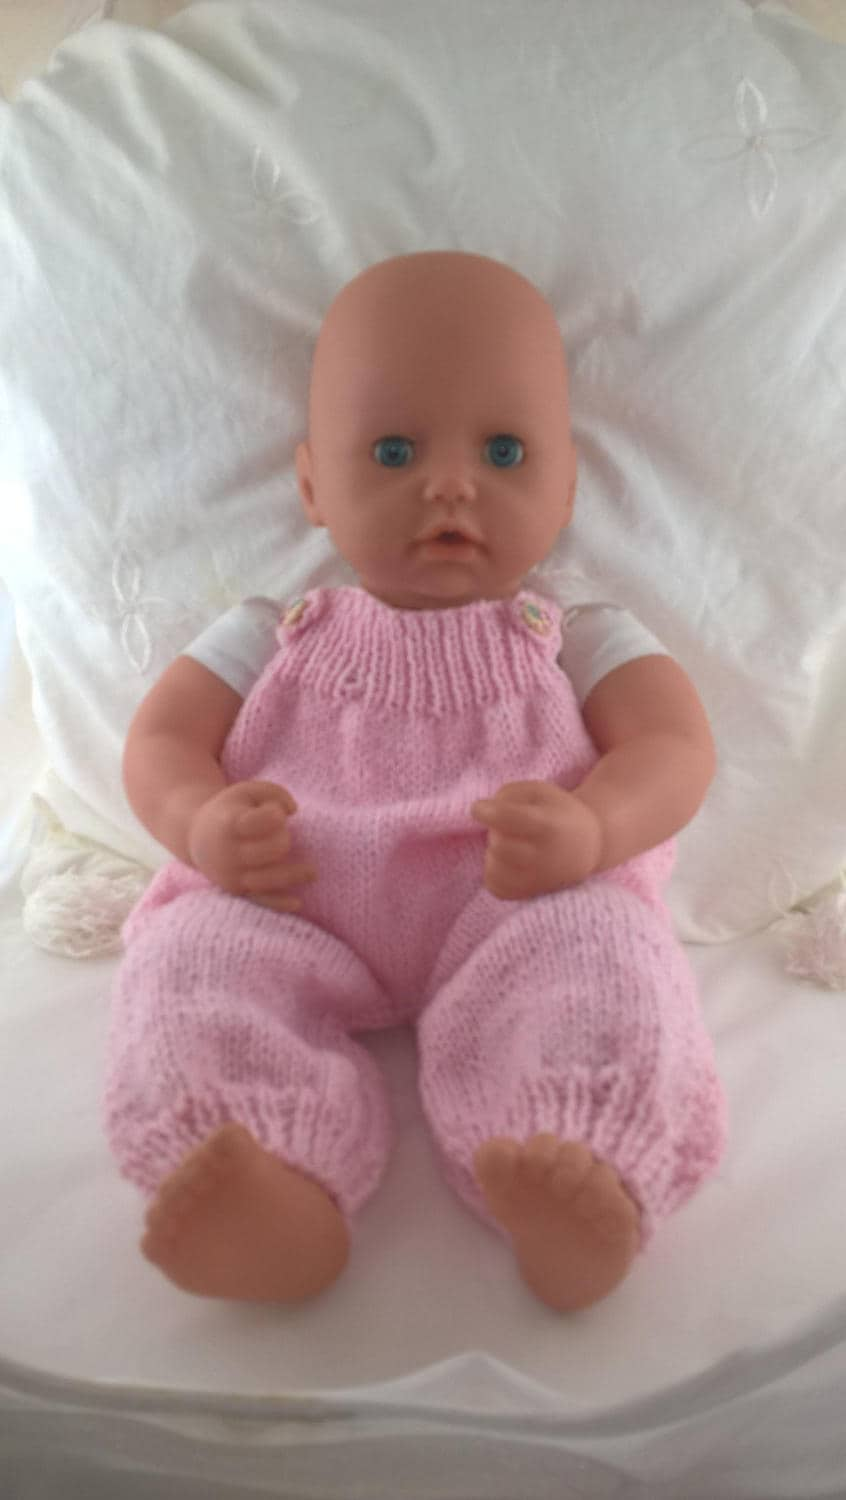 Pink dungarees for 18inch doll. Romper suit for Baby Annabell type doll. Hand knit clothes for 46 cm doll. Roomy babygrow baby doll clothes.